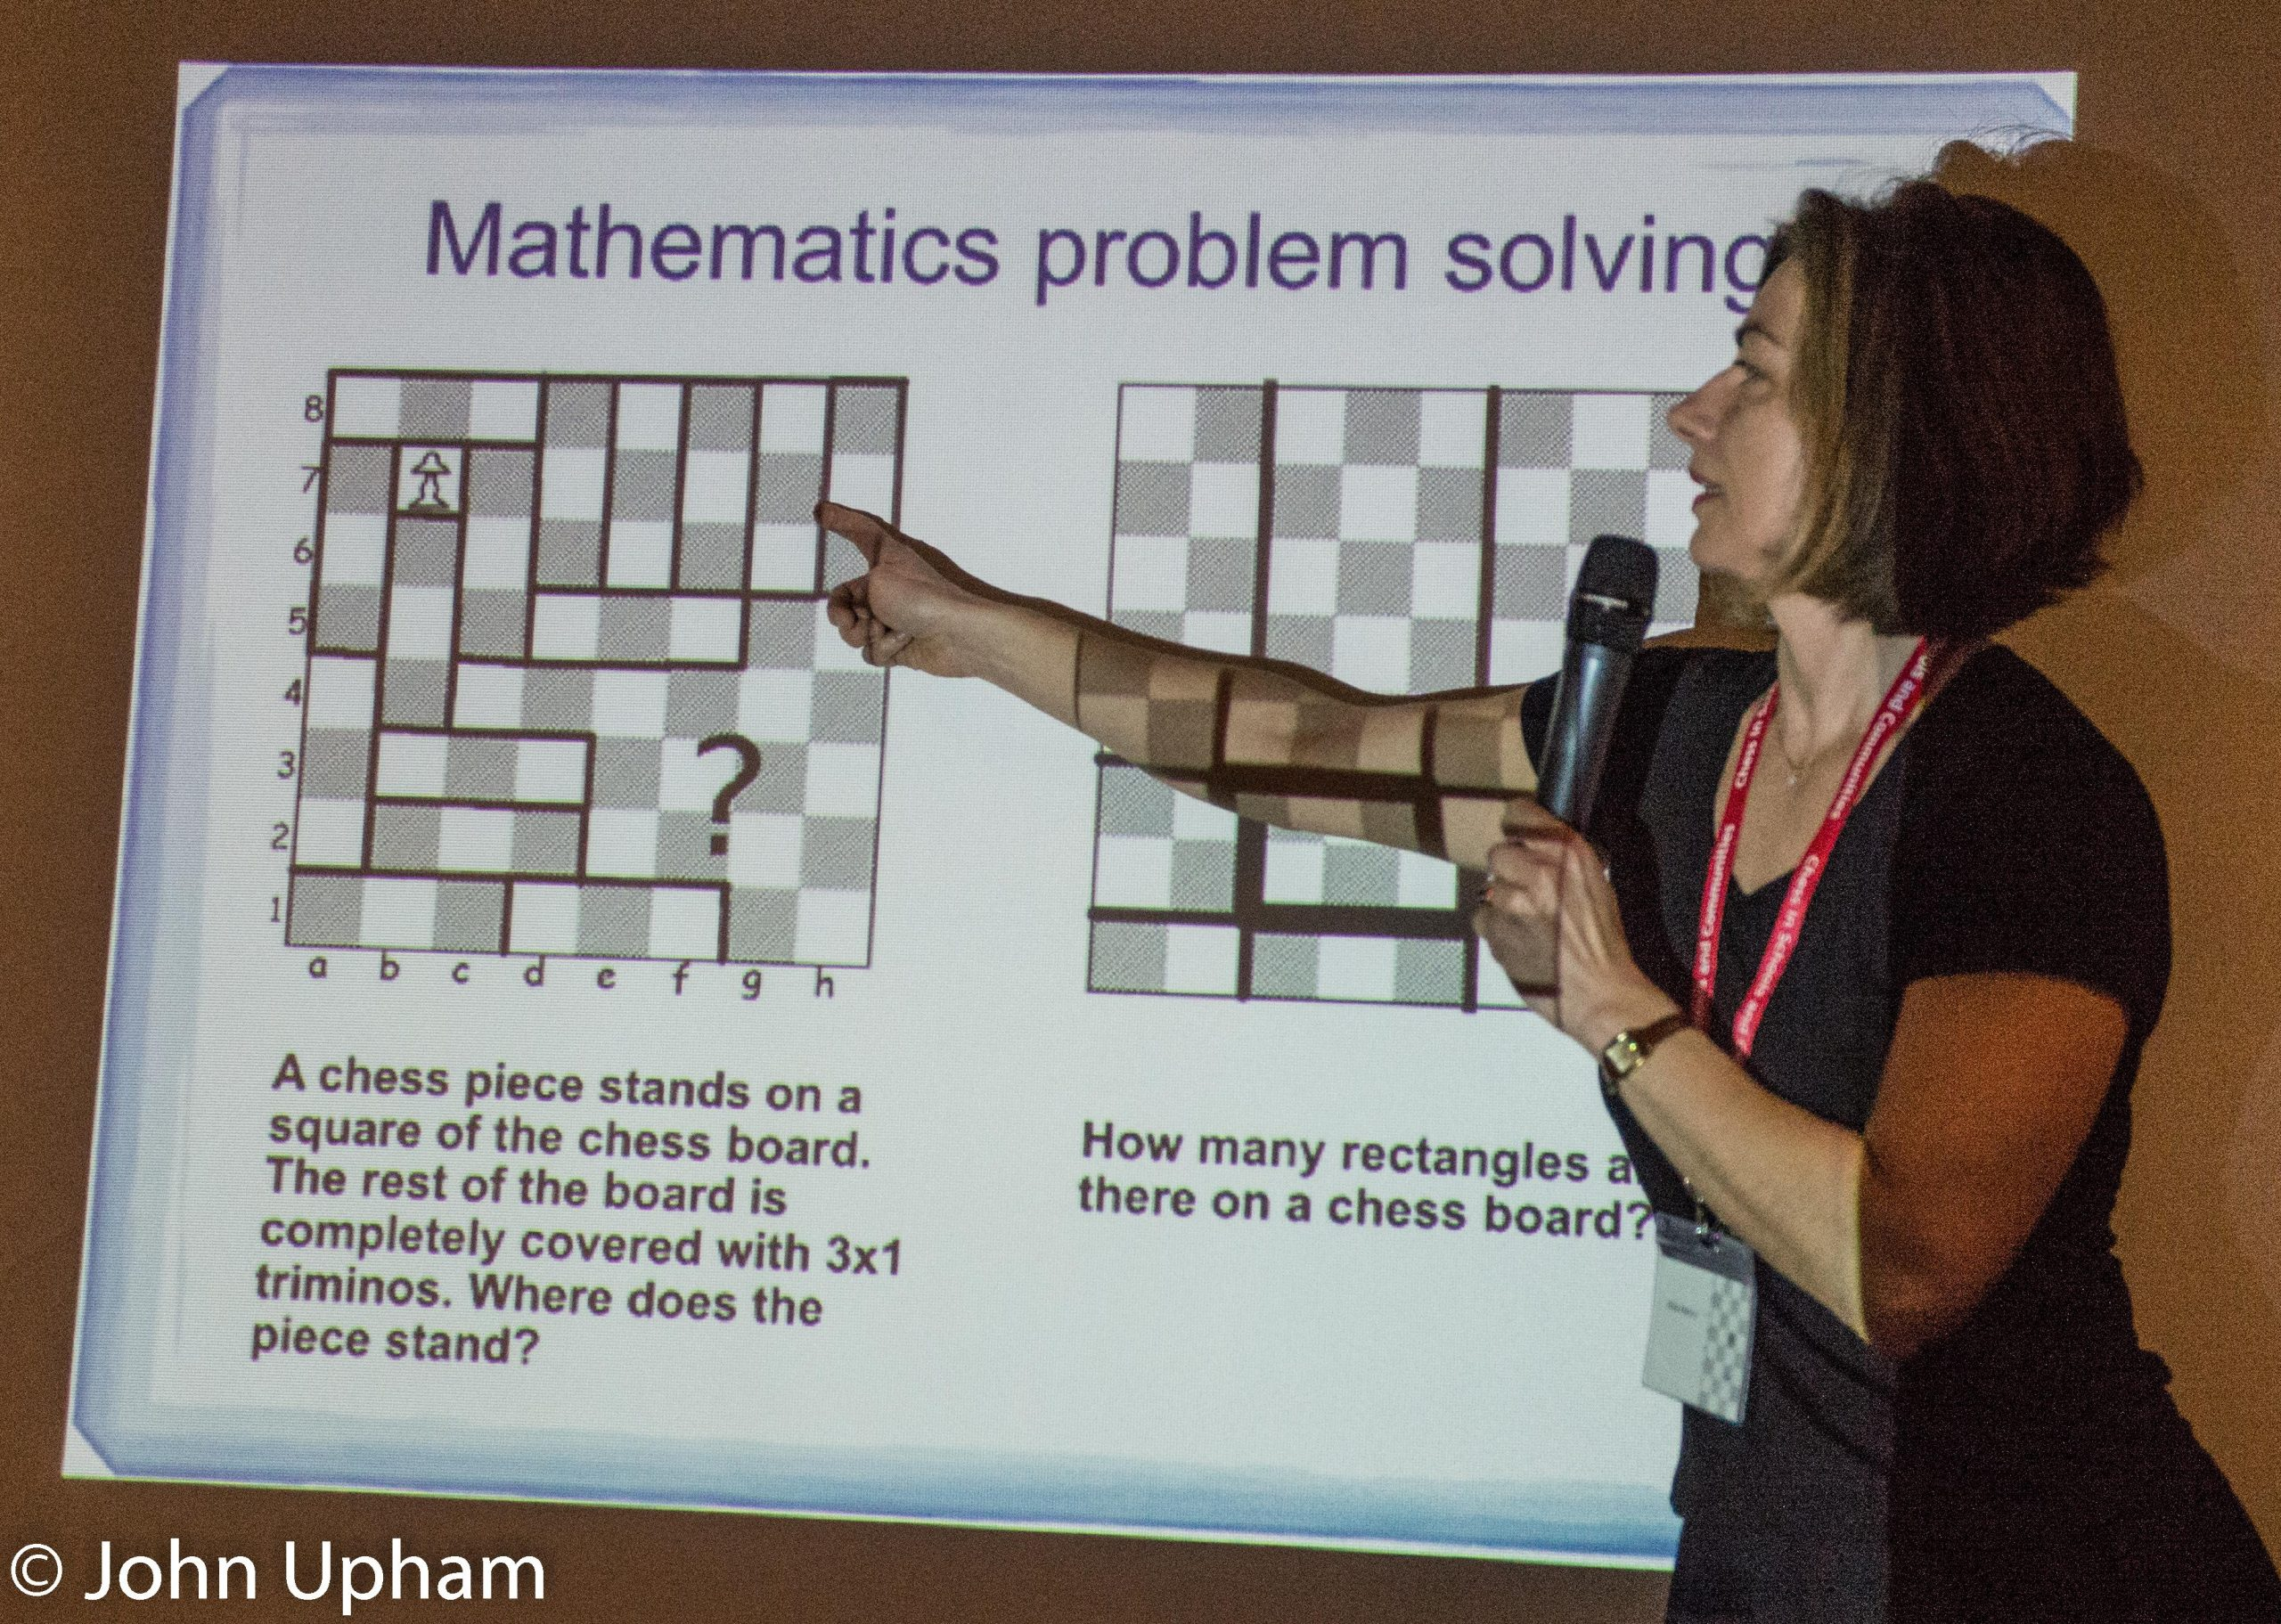 WIM Rita Atkins at the 2016 London Chess Conference  : The Didactics of Chess, Courtesy of John Upham Photography.